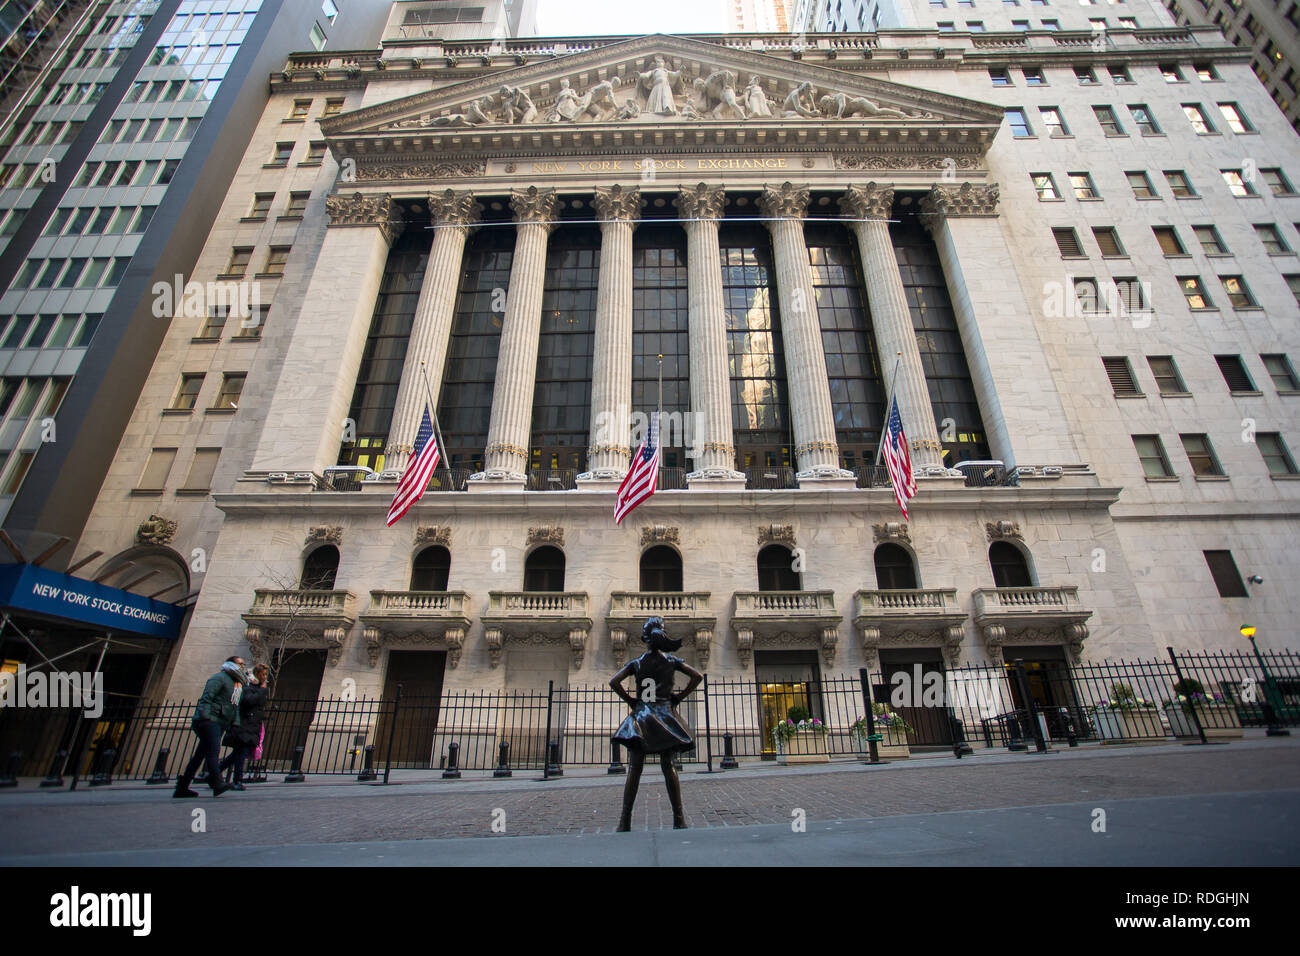 General View GV of the New York Stock Exchange, Wall Street, Manhattan, New York, USA with a view of the fearless girl statue - Stock Image